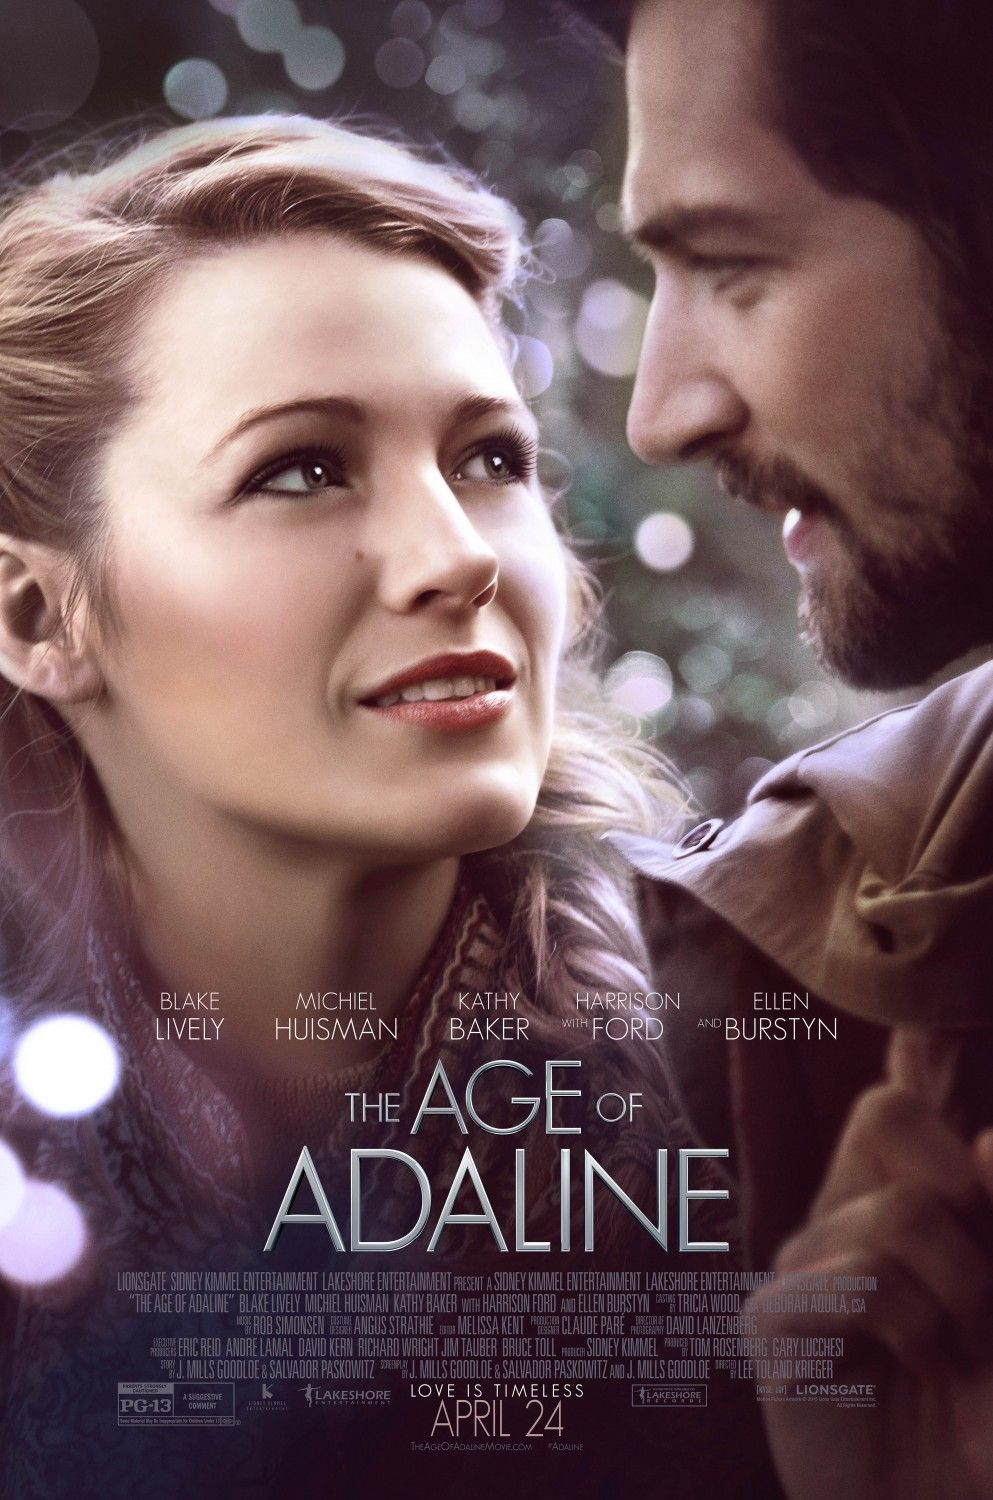 Lee Toland Krieger S The Age Of Adaline 2015 Filmes Posters